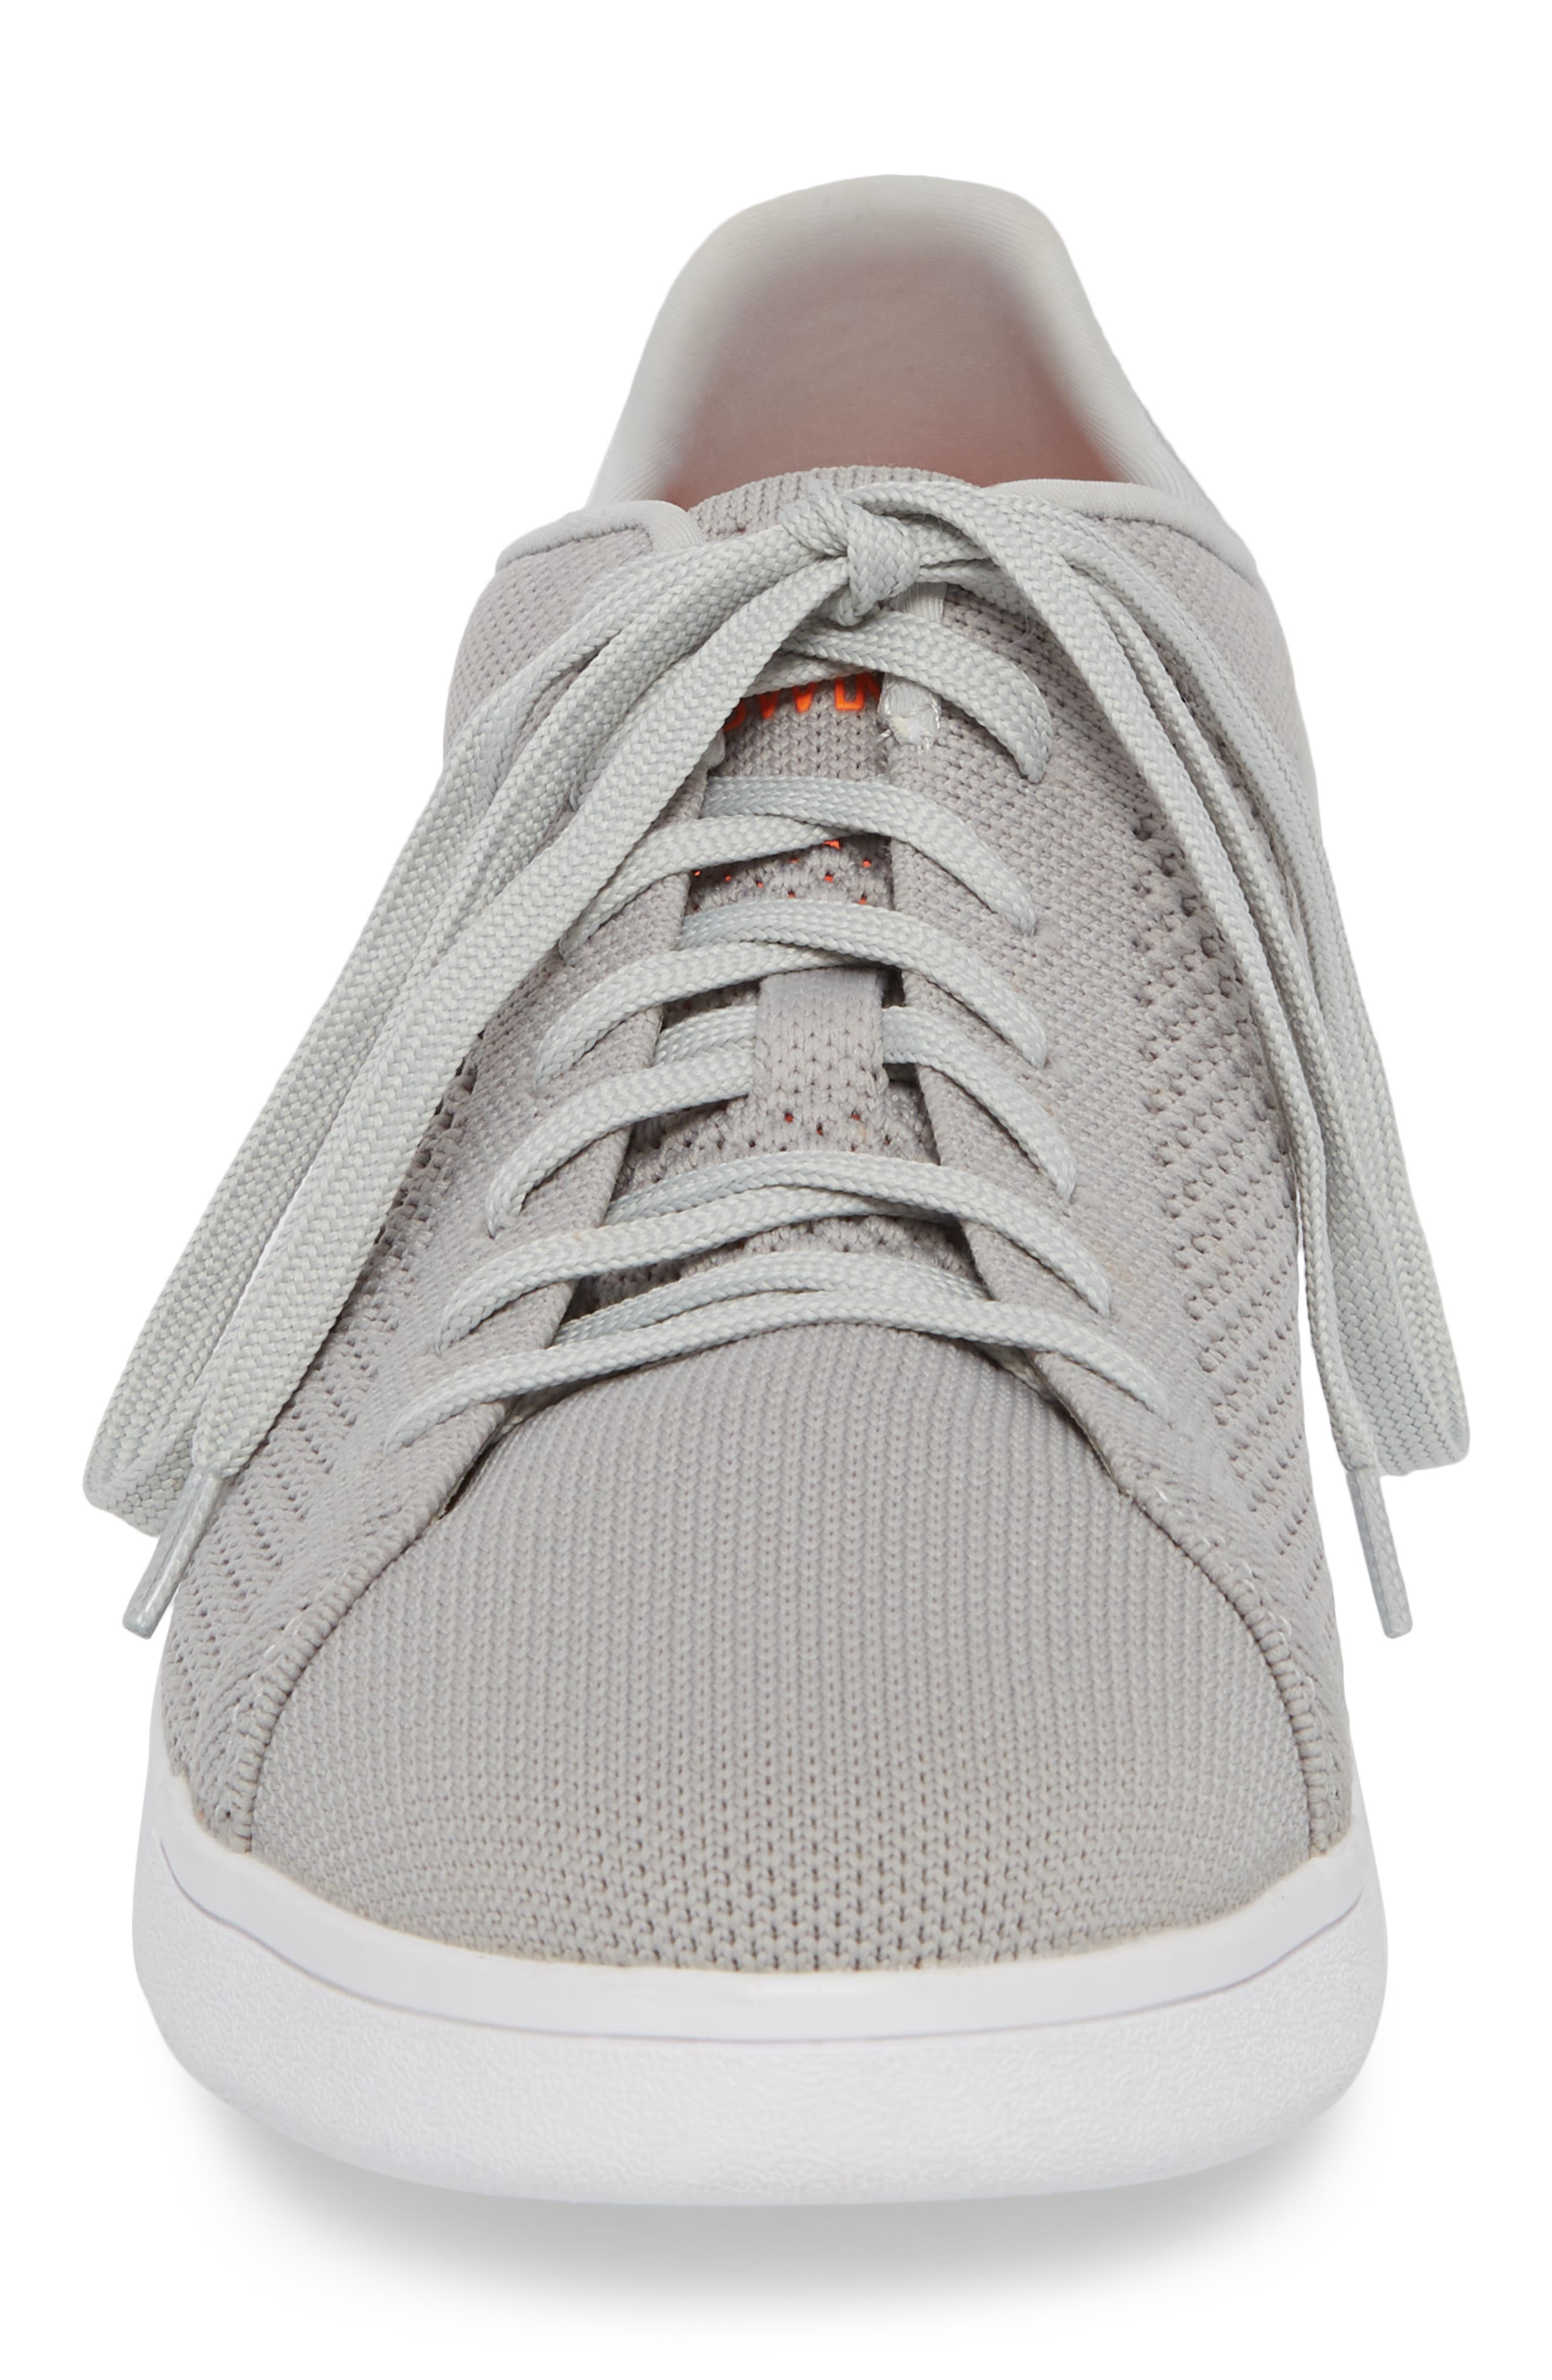 Breeze Tennis Washable Knit Sneaker,                             Alternate thumbnail 4, color,                             Light Grey/ White Fabric